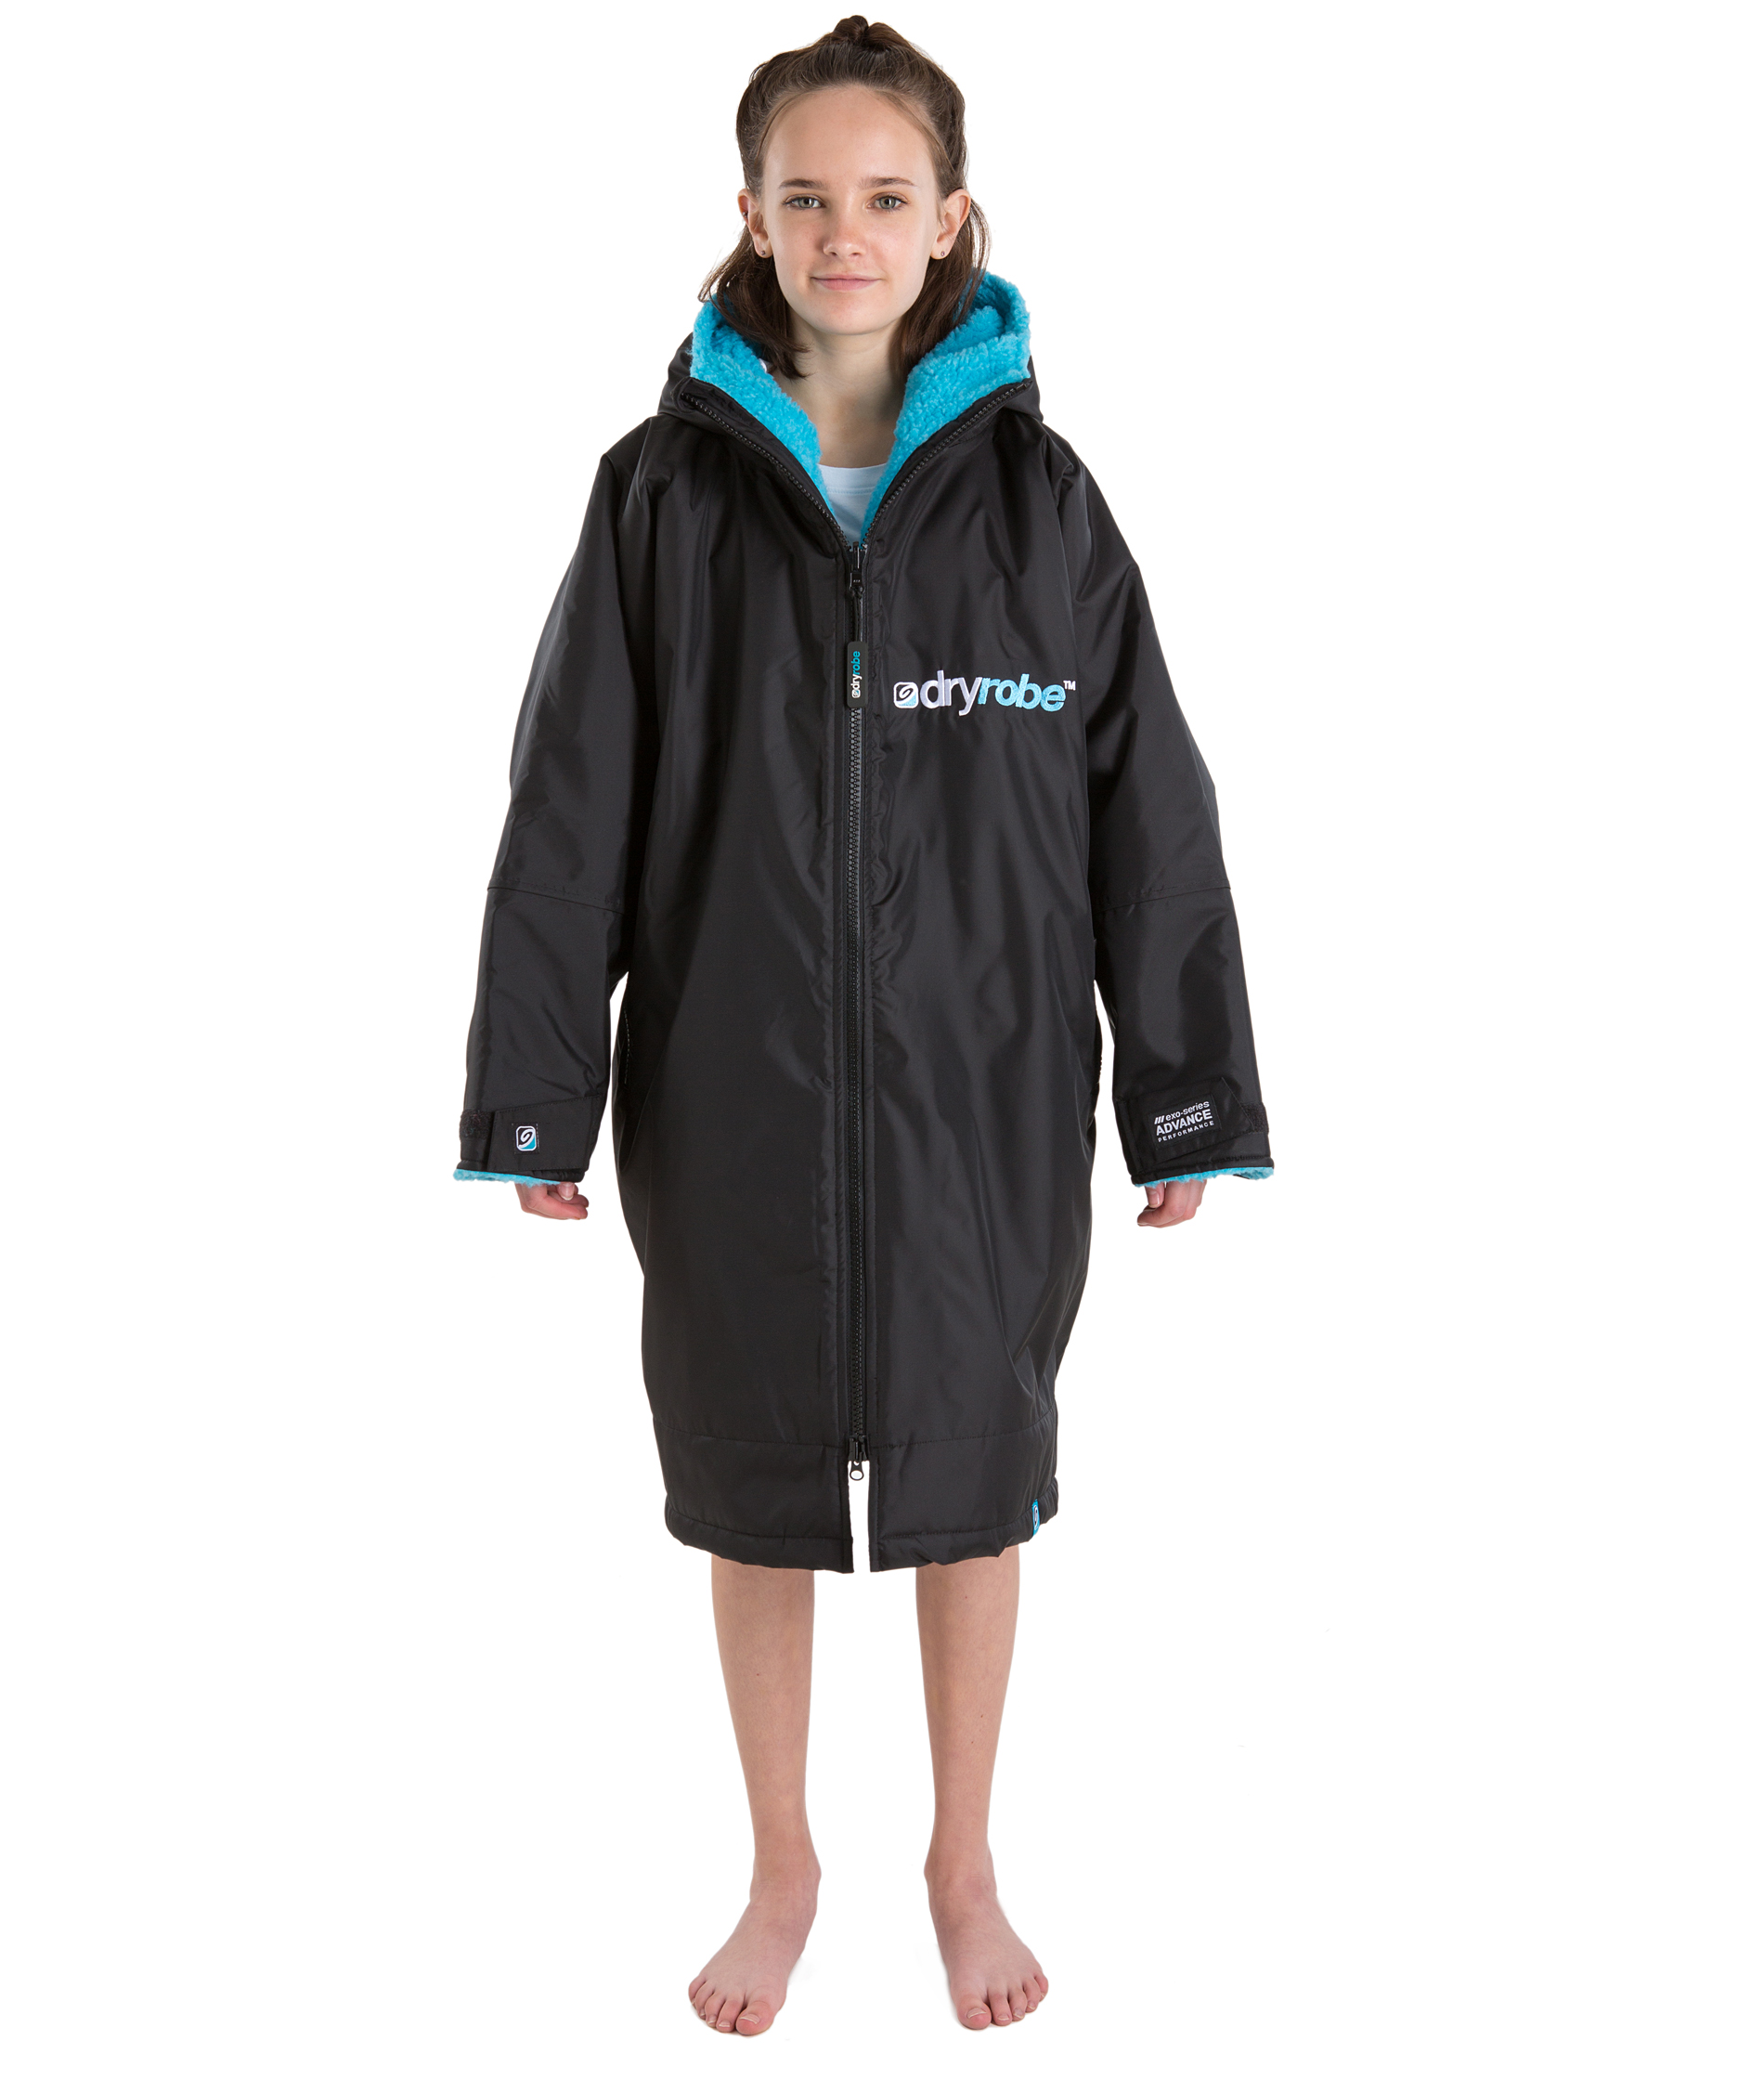 Dryrobe Advance Long Sleeve Black/Blue - Small